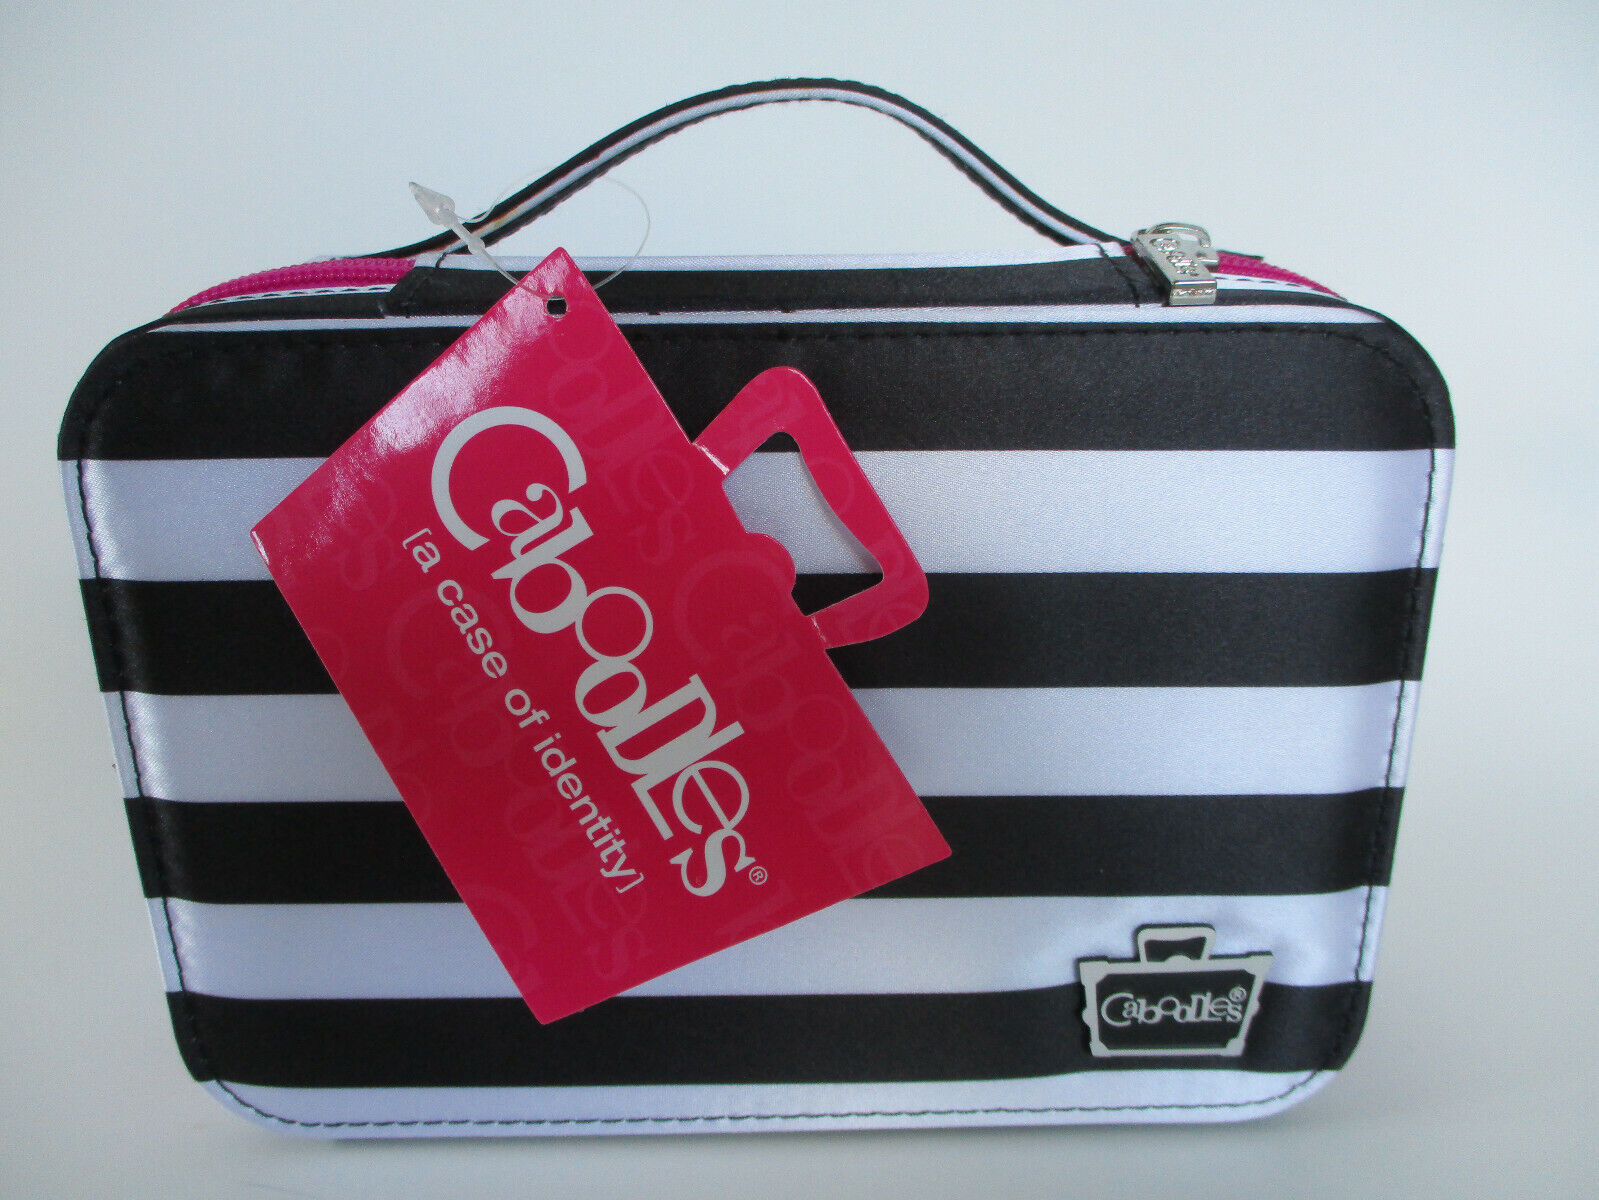 Caboodles Obsession Cosmetic Valet, Black/White Stripe, 0.61